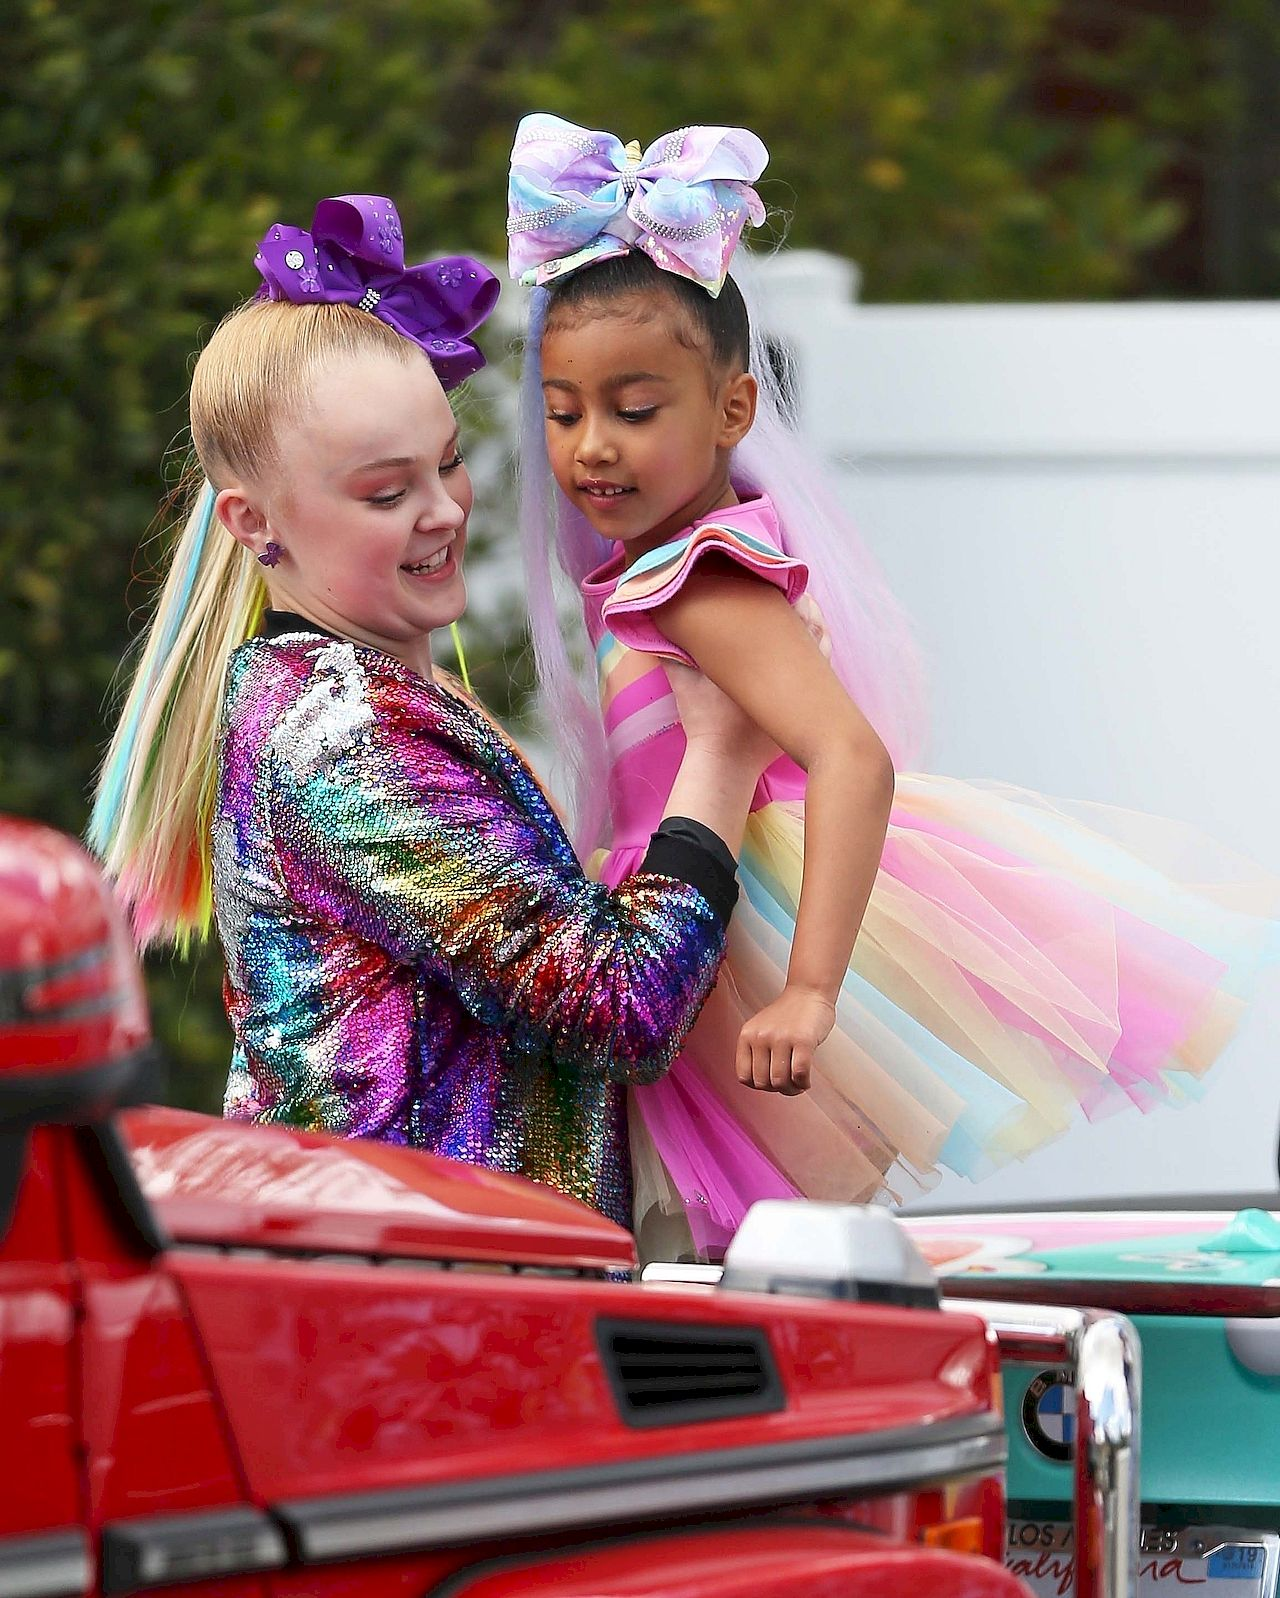 *EXCLUSIVE* North West and Kim Kardashian meet Youtube Star JoJo Siwa ahead of video collaboration **WEB MUST CALL FOR PRICING** JoJo Siwa, North West